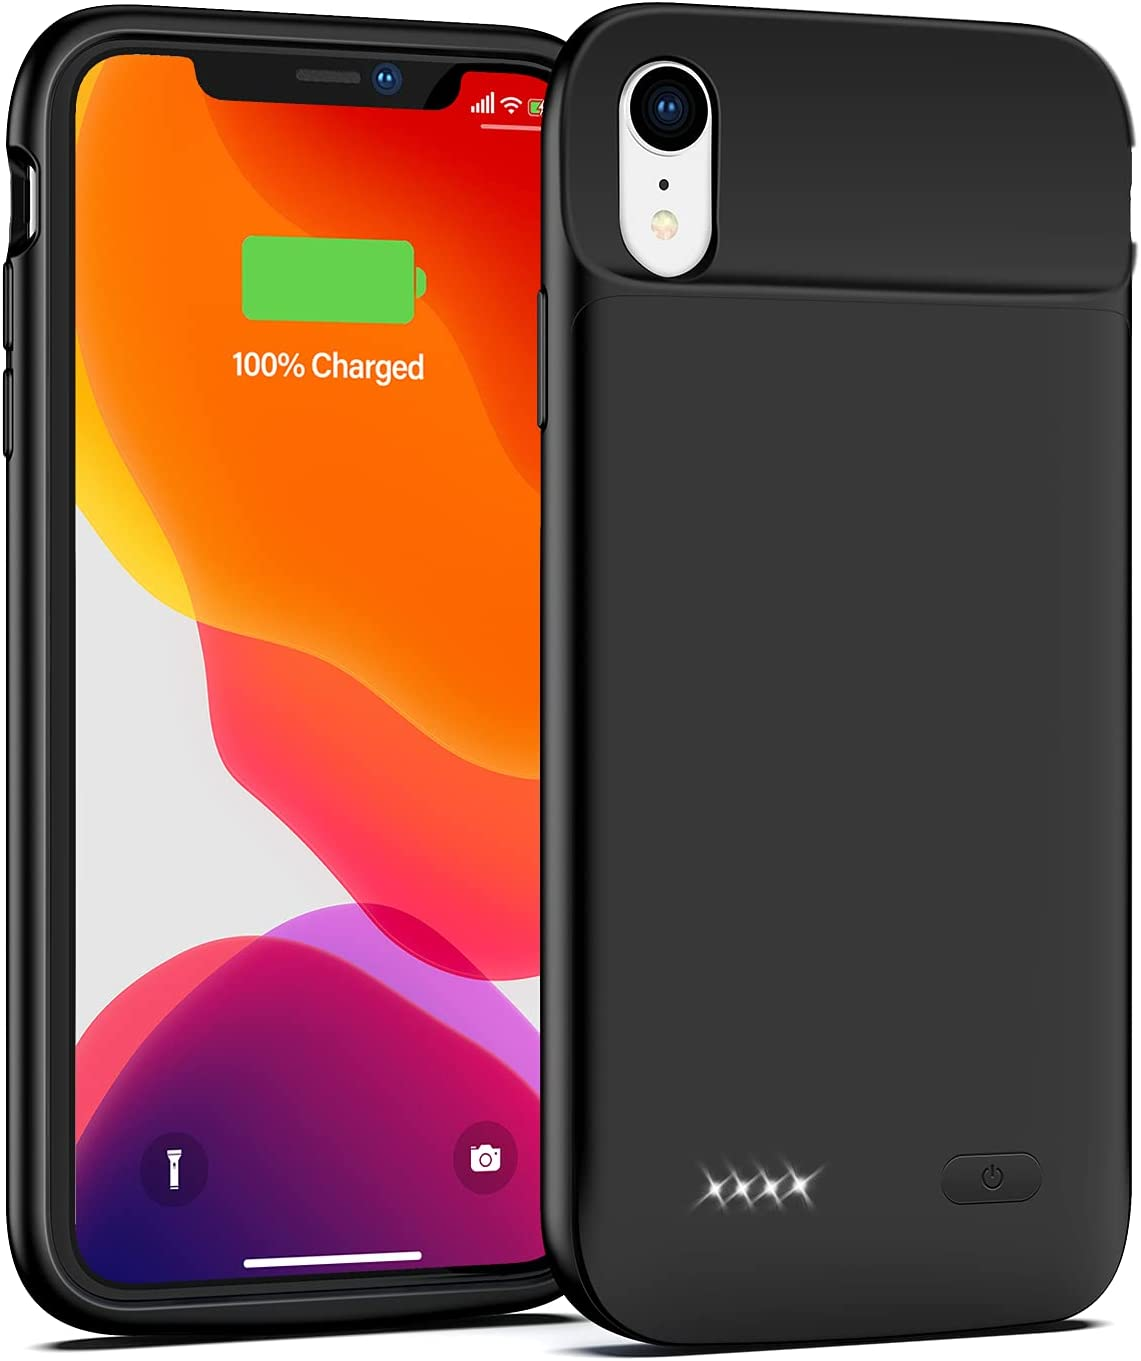 Lonlif Battery Case for iPhone XR, 5000mAh Protective Charging Case Portable Rechargeable Battery Pack Extended Slim Charger Backup Power Bank(6.1 inch)-Black